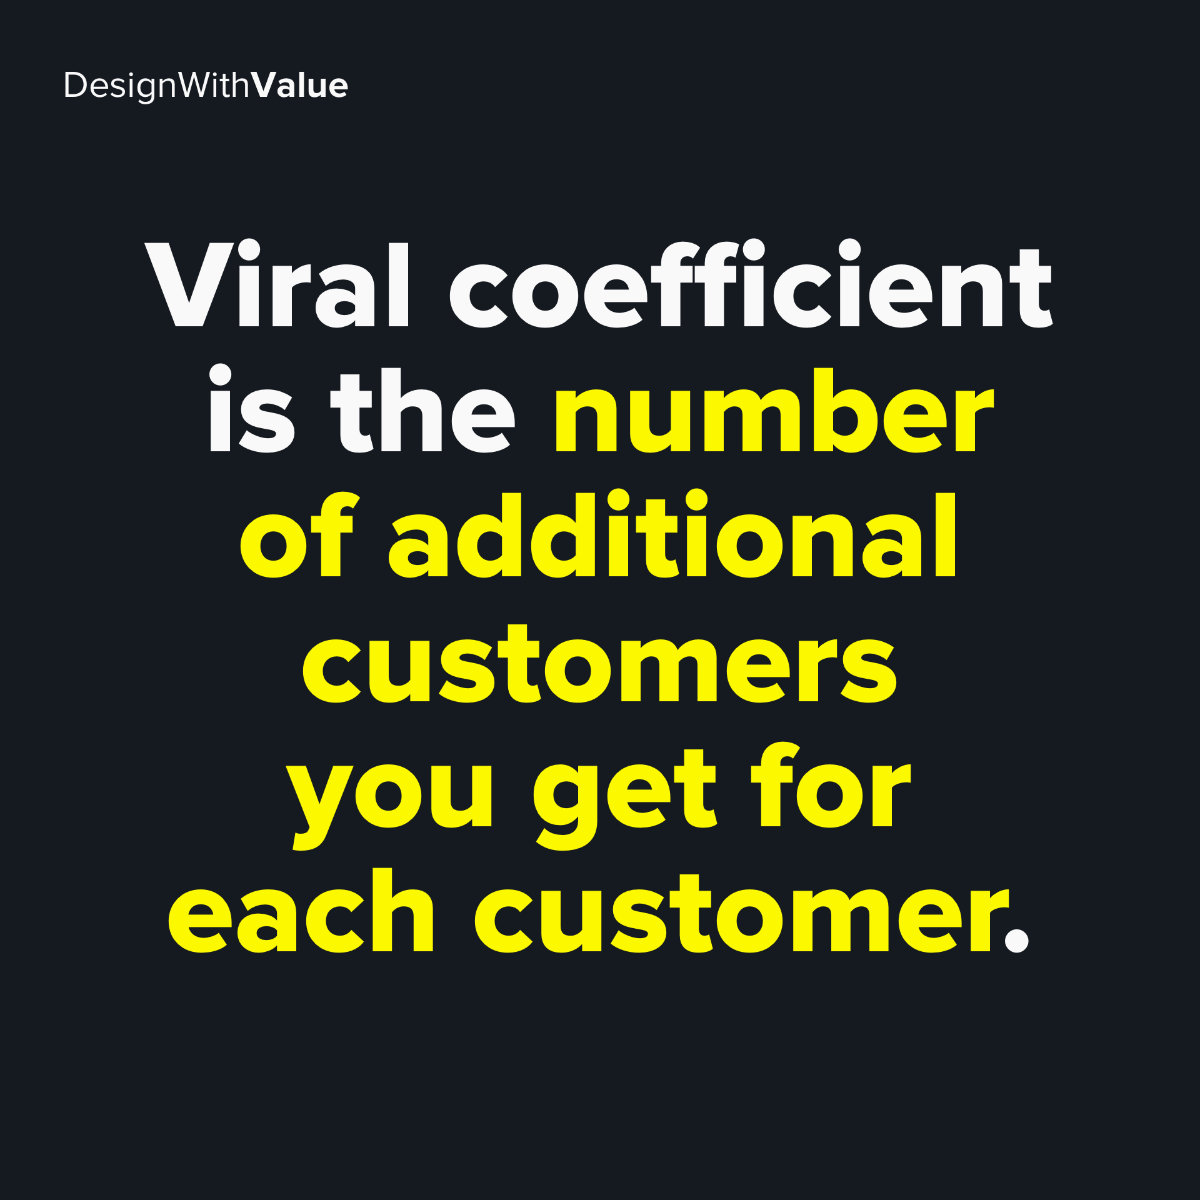 Viral coefficient is the number of additional customers you get for each customer